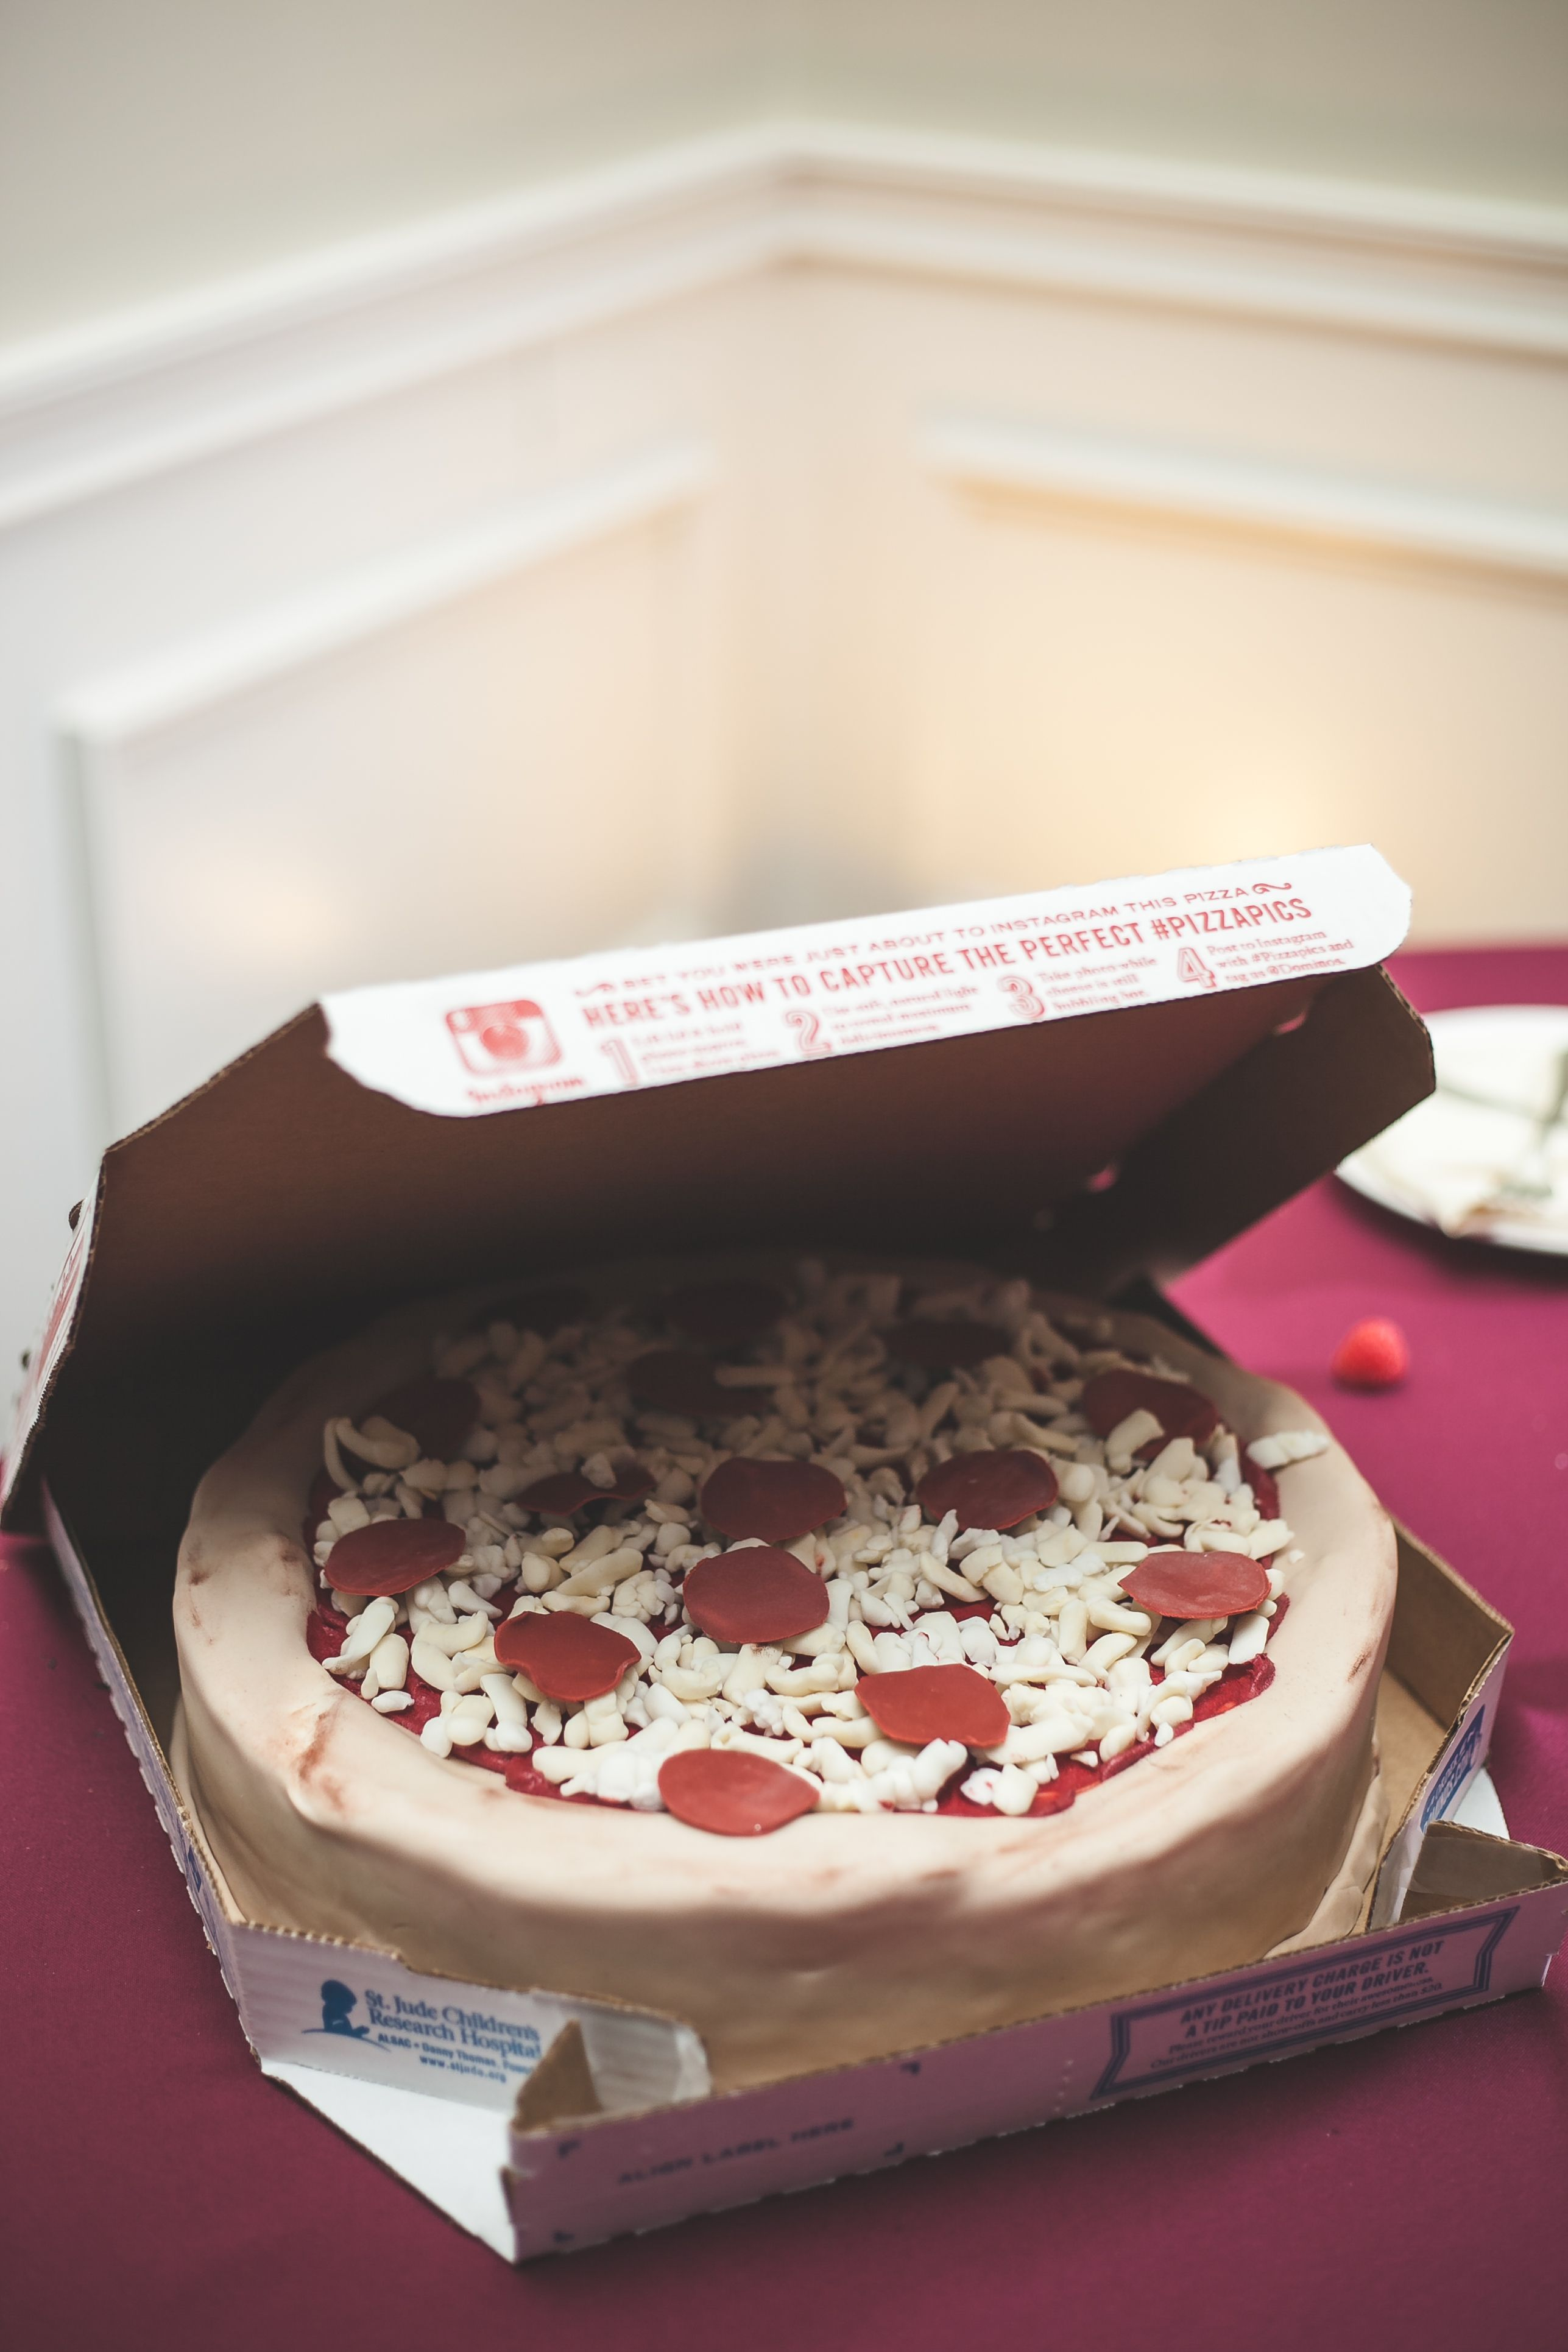 non traditional wedding cake a pizza cake for the groom 39 s cake made by sweets by e venue. Black Bedroom Furniture Sets. Home Design Ideas